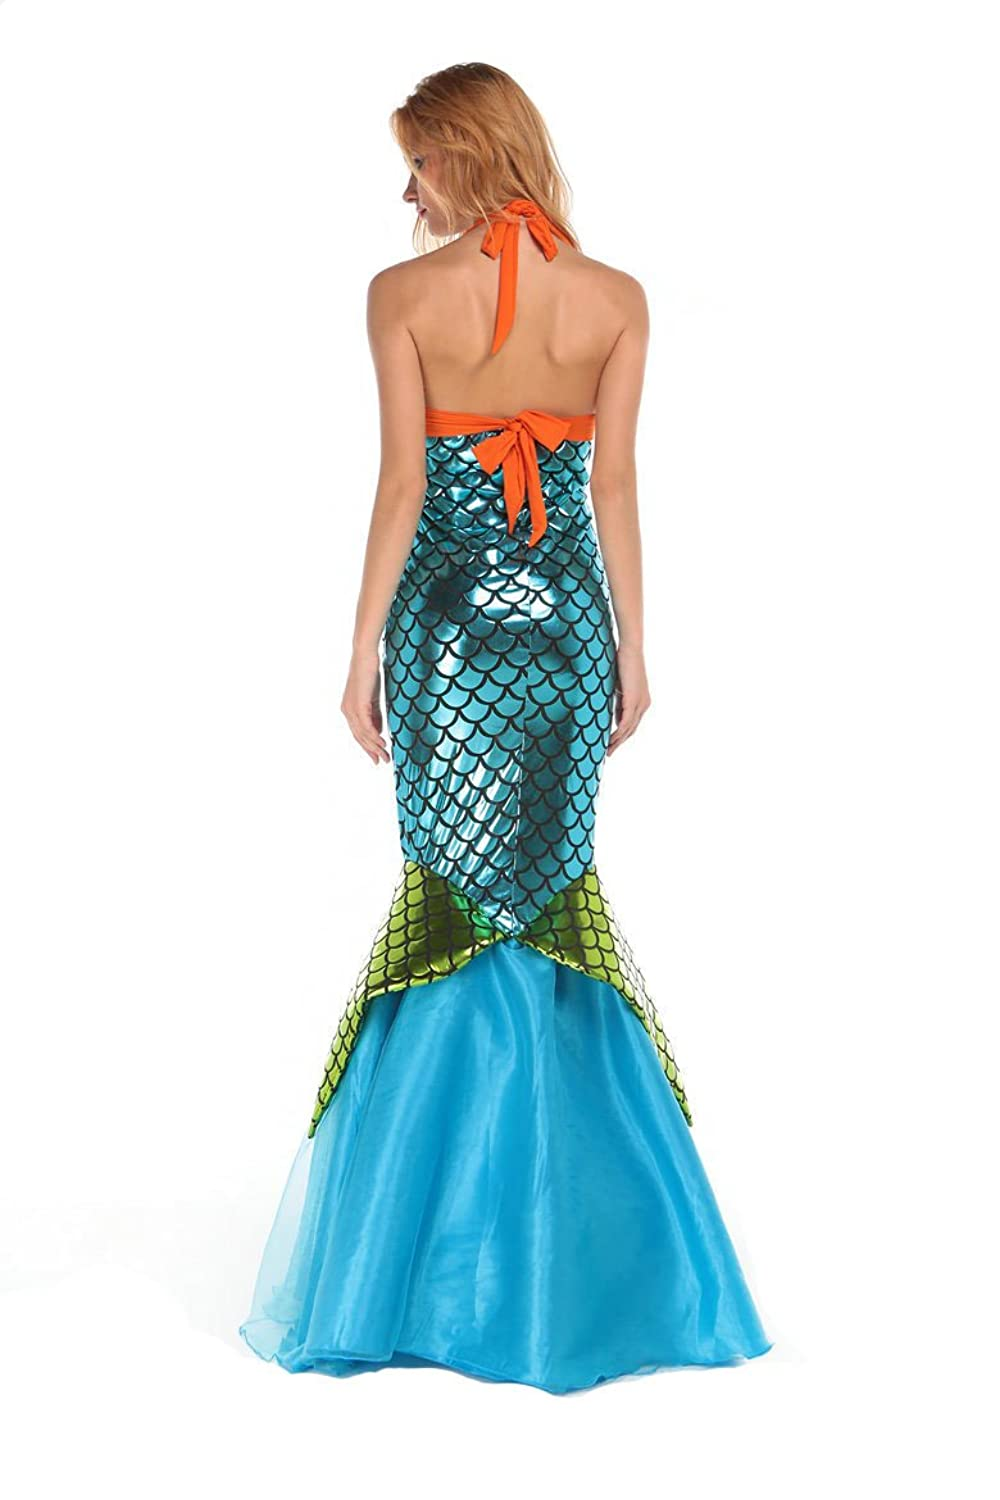 Amazon.com: LOSTSS Womens Adult Sexy Sequined Mermaid Dresses Cosplay Mermaid Dress: Clothing